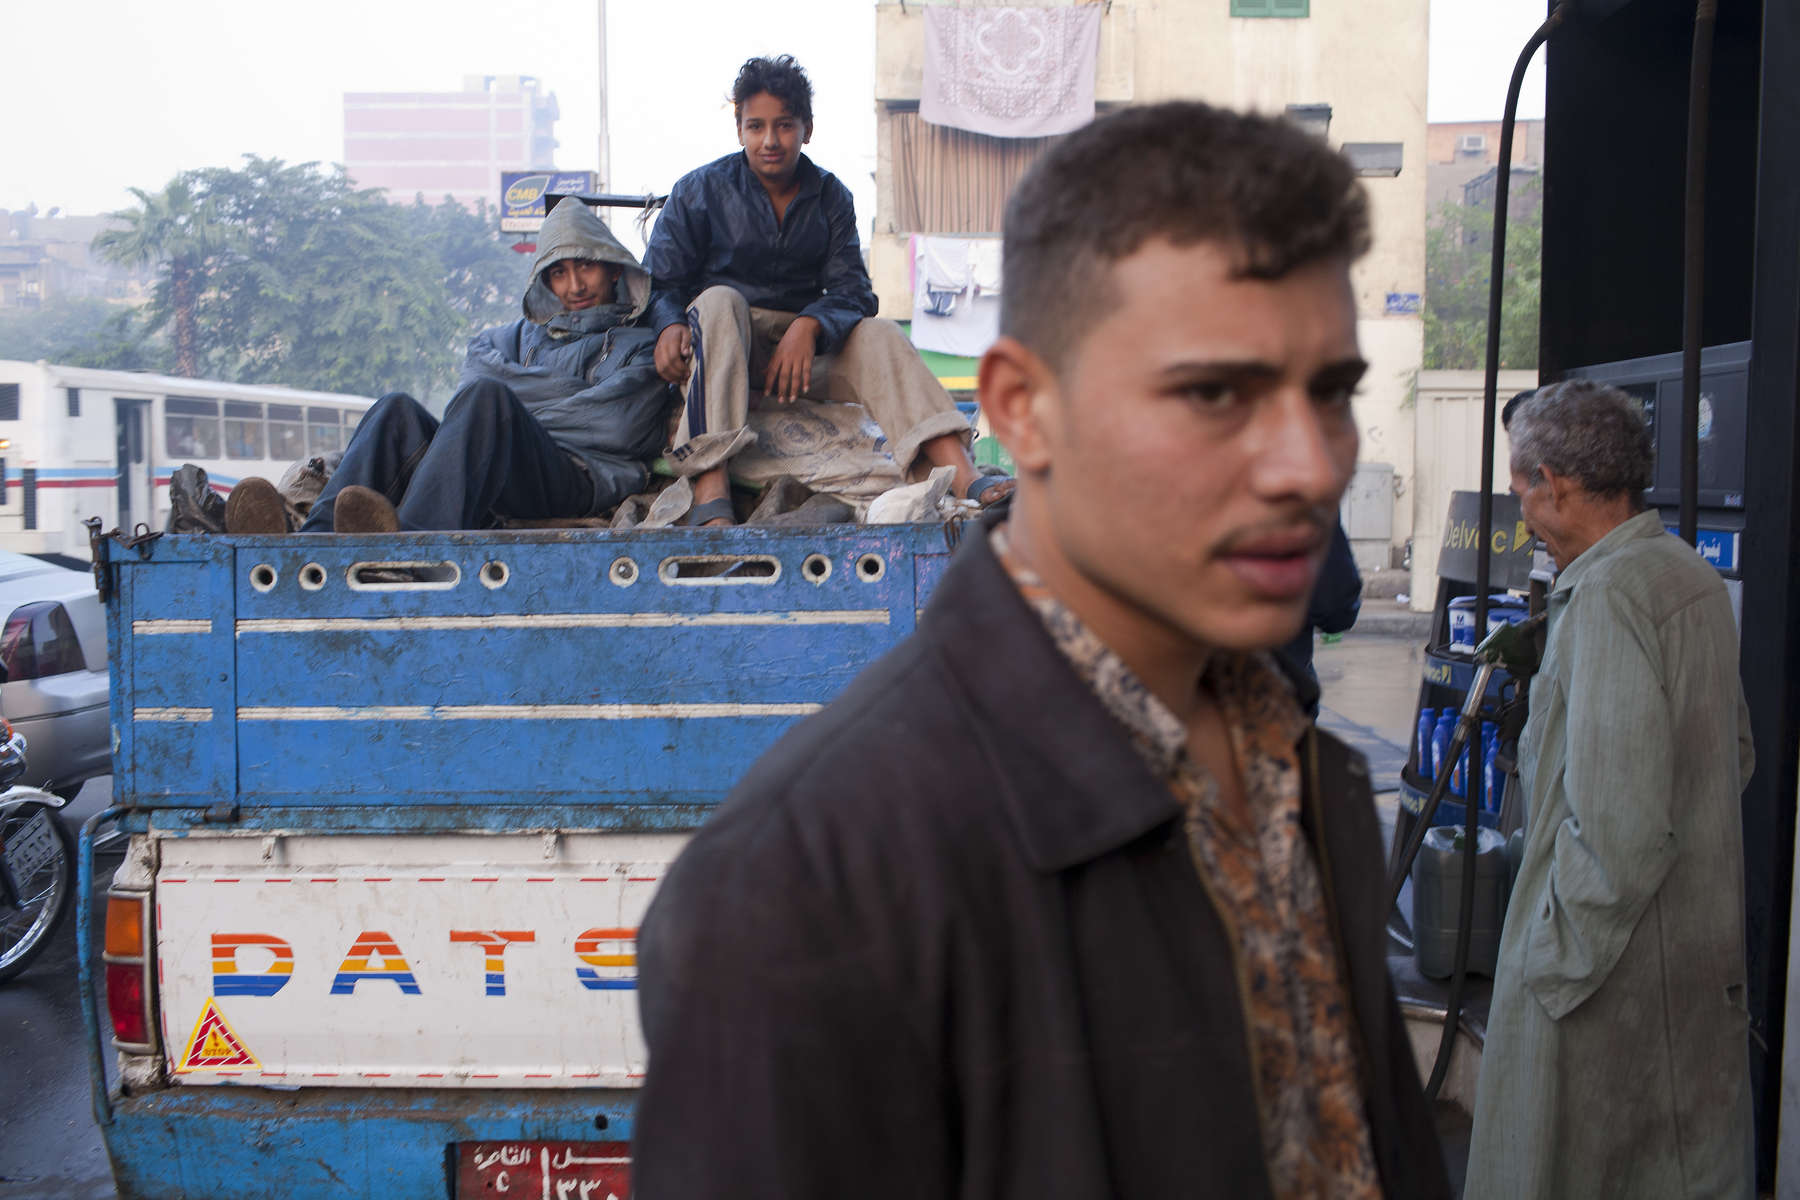 "A garbage collection crew of young Zabaleen men on the street in Cairo.Moqqatam is a suburb on the edge of Cairo and home to a people known as the Zabaleen, said to be the world's greatest waste recyclers. The Zabaleen, which means plainly enough, ""the garbage collectors"", pick up around 4,000 tons of Cairo's waste each day. American researchers have shown that the Zabaleen recycle 85% of this garbage into something useful: a higher rate than anywhere else on the planet. The men do two shifts leaving about 4am and again around 9am. The rubbish is taken back to Moqqatam for the women to sit in and sort through. The organic waste is fed to livestock (the Zabaleen are originally swine herders), the rest sorted for recycling. The future of the Zabaleen is uncertain: if the Cairo authorities get their way, this community of around 25,000 Coptic Christians living in a Muslim country will be gone, and with it, their unique lifestyle."